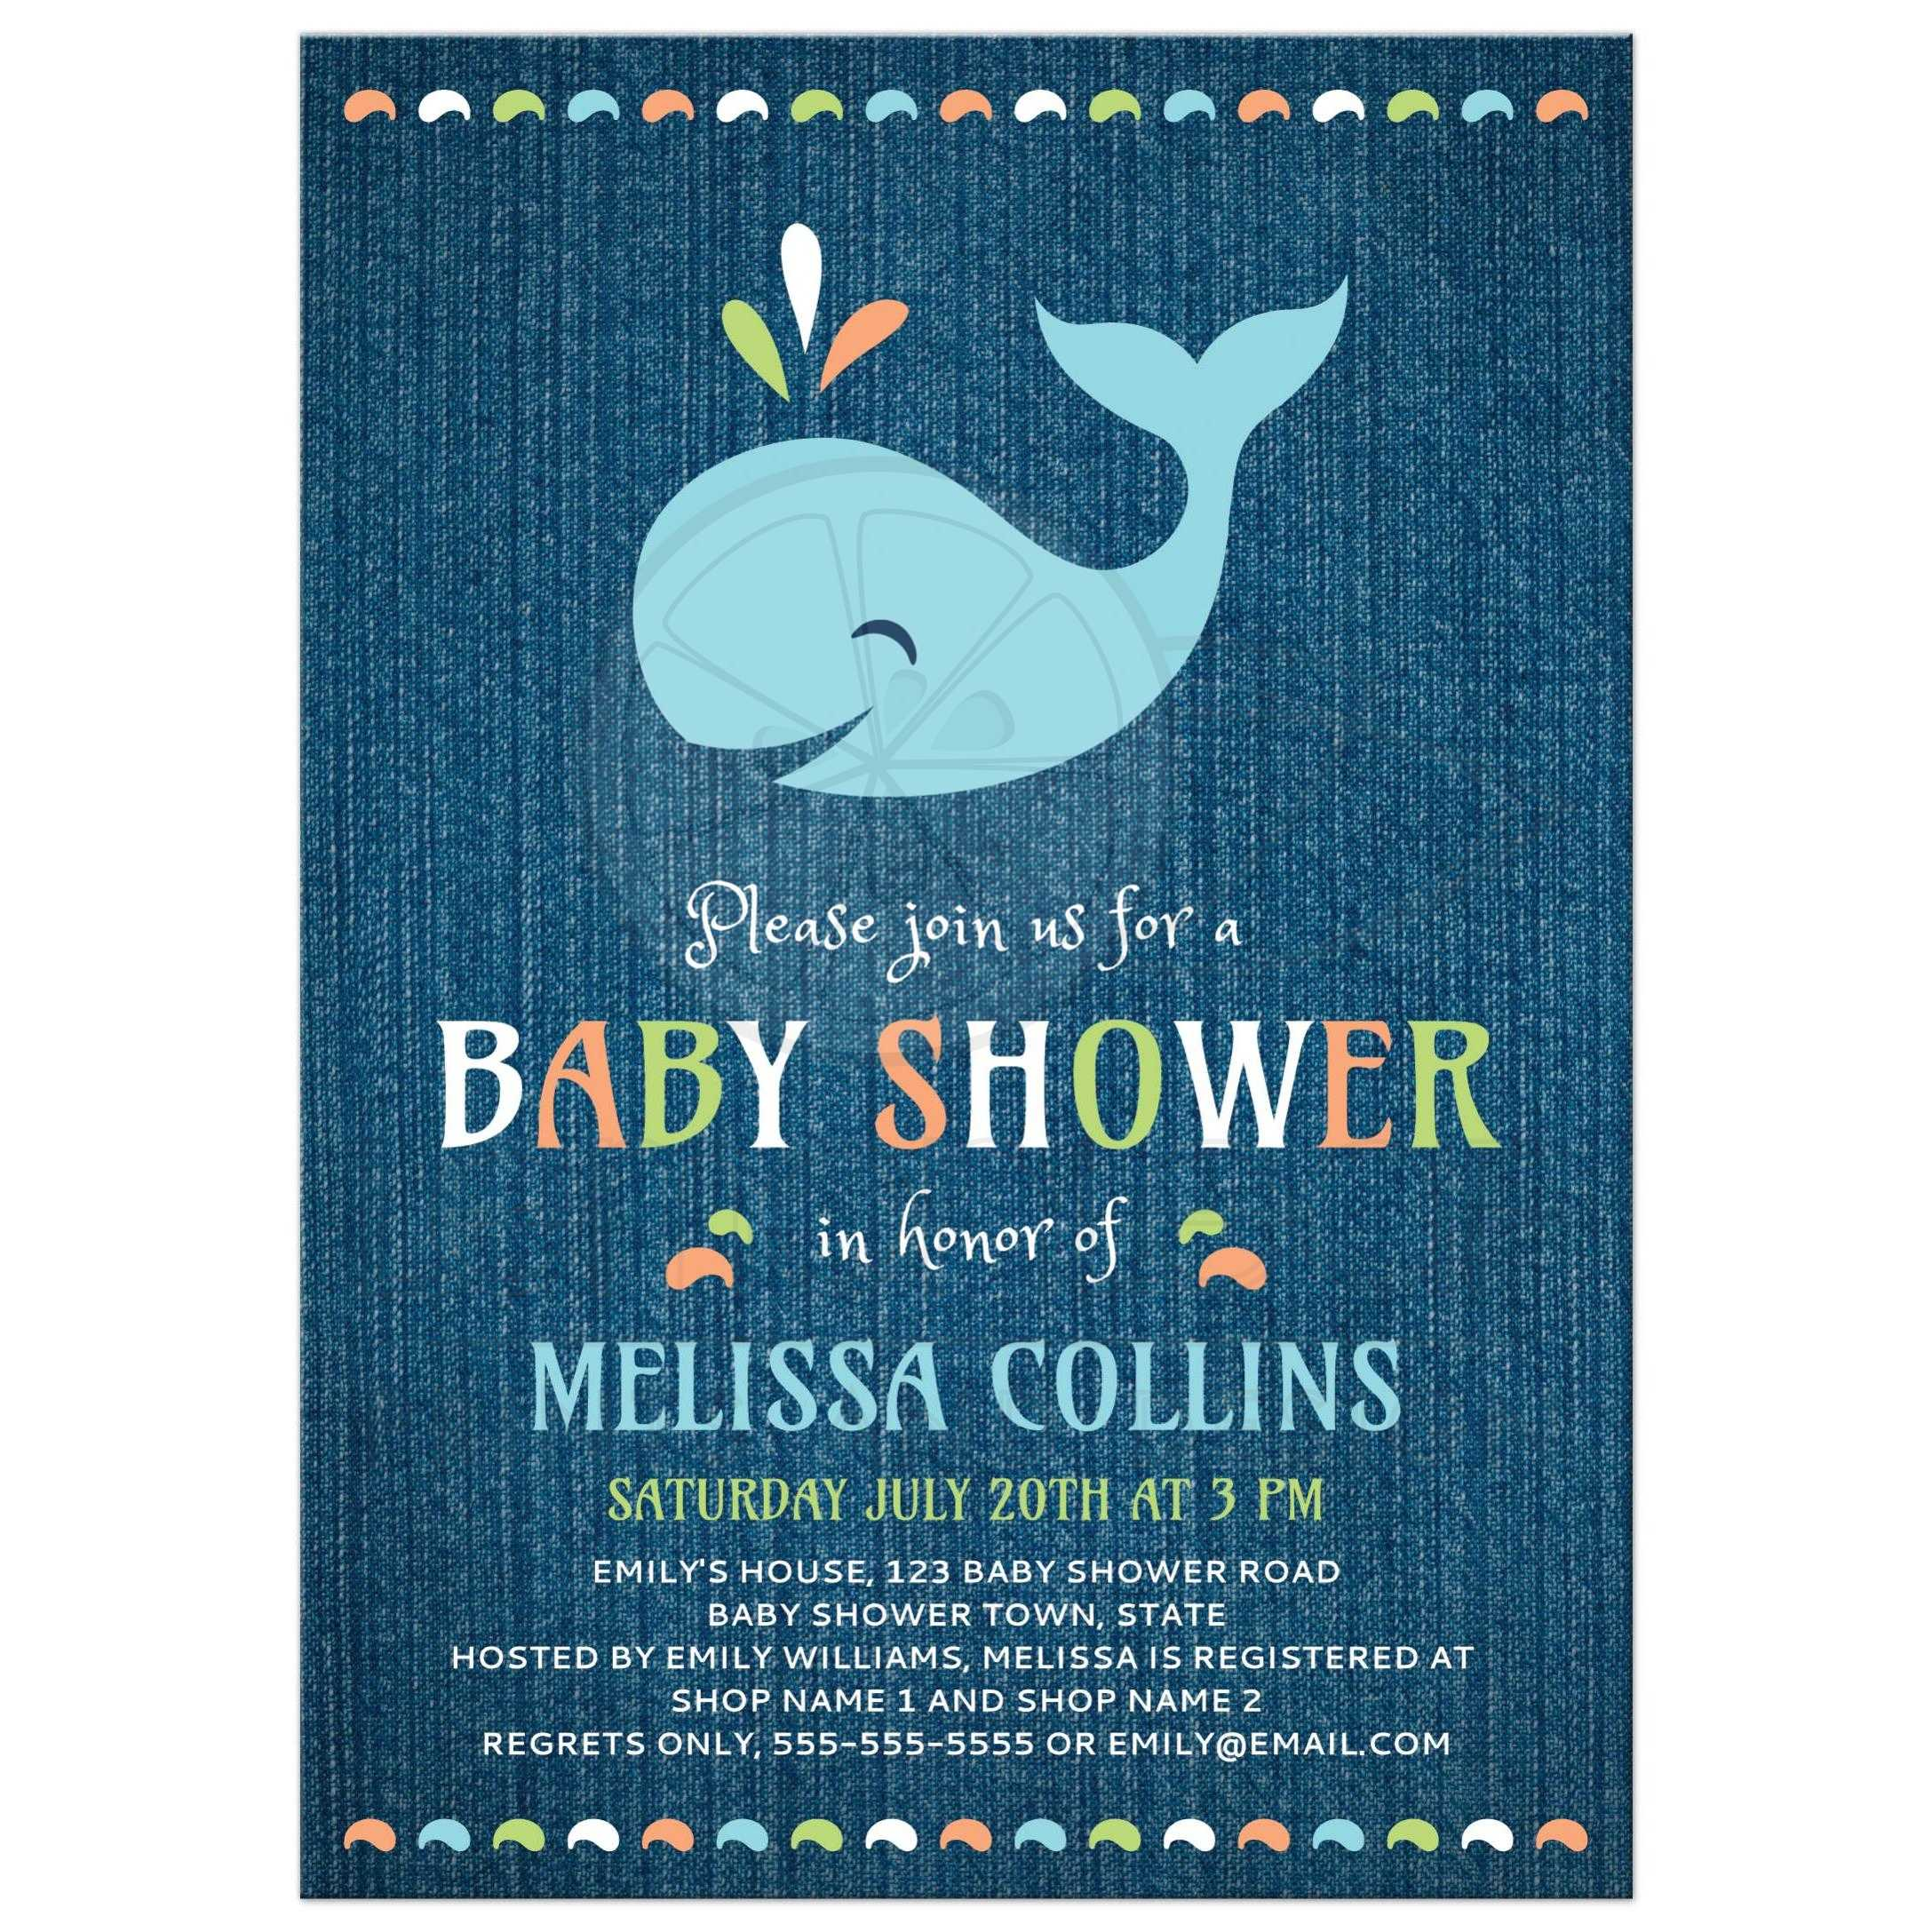 Whale on blue denim cute baby shower invitation Under the sea theme